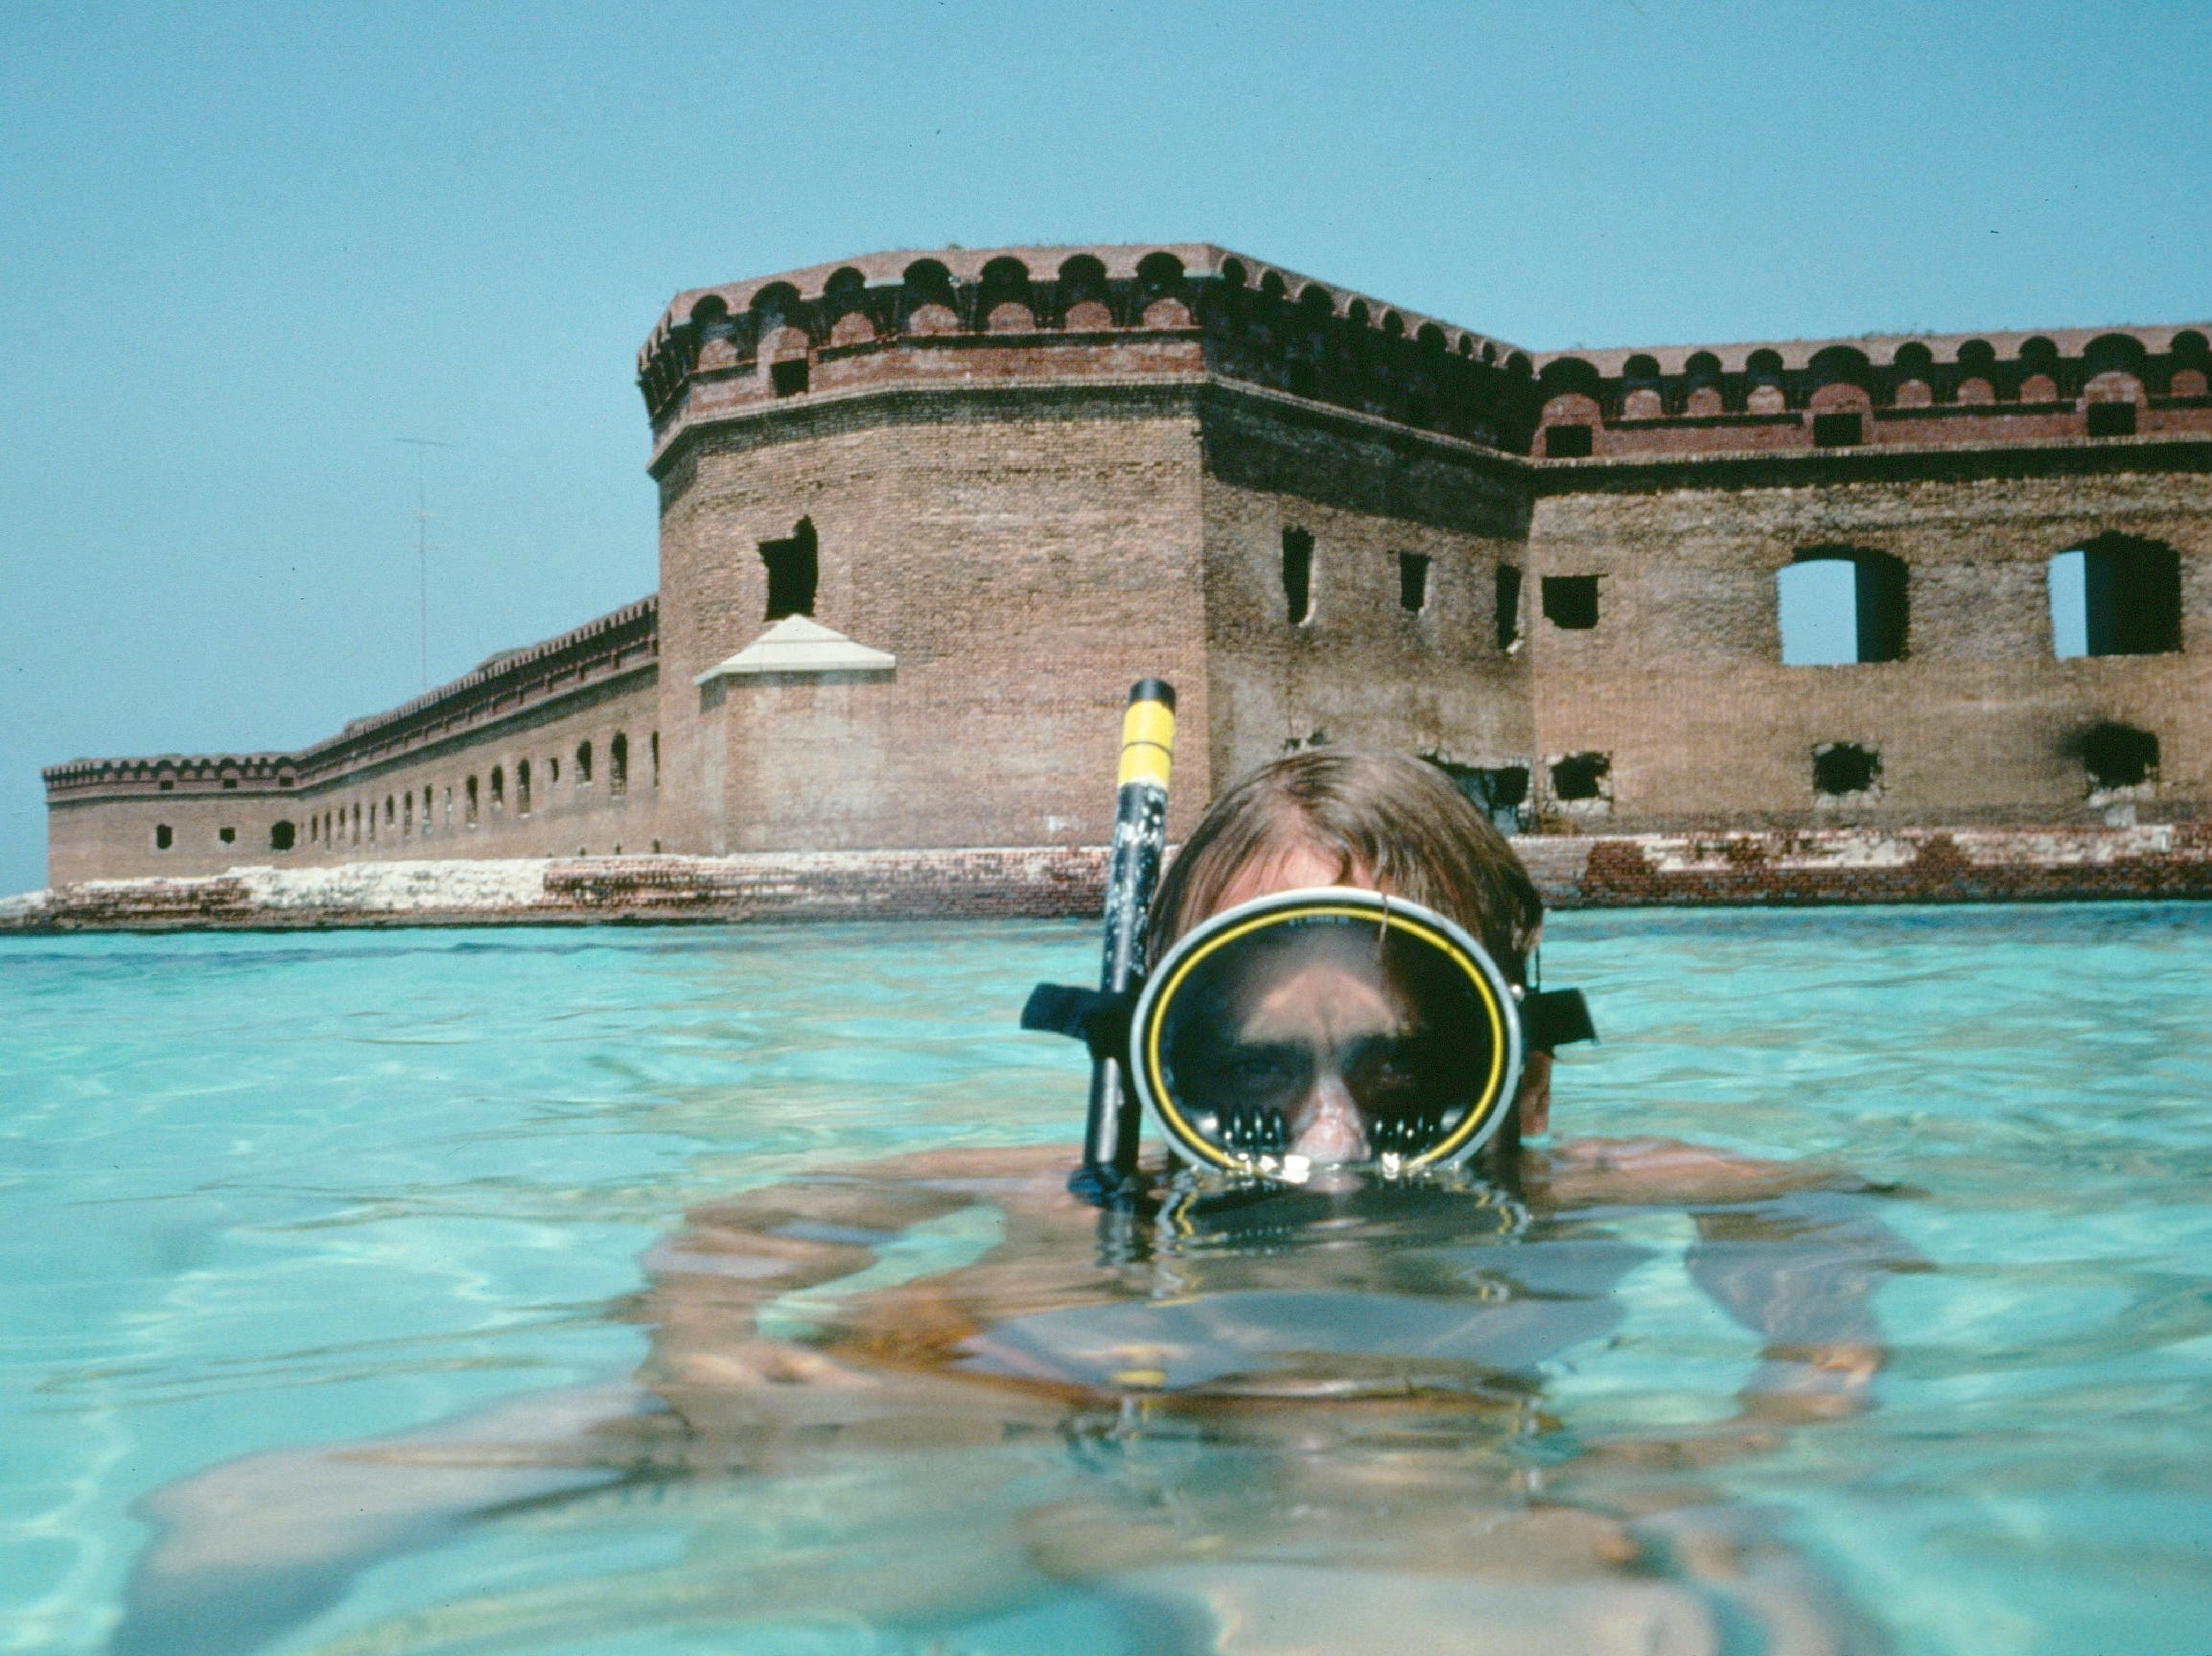 Dry Tortugas National Park.  The coral reefs at this park are as close as one can get to a pristine underwater world inside the boundaries of the lower 48. A visit to Dry Tortugas can yield the same kind of natural beauty that might otherwise be seen in a visit to the Caribbean or another more remote and expensive vacation spot. --- DATE TAKEN: rec'd 03/05  No Byline   Everglades National Park        HO      - handout   ORG XMIT: ZX32585